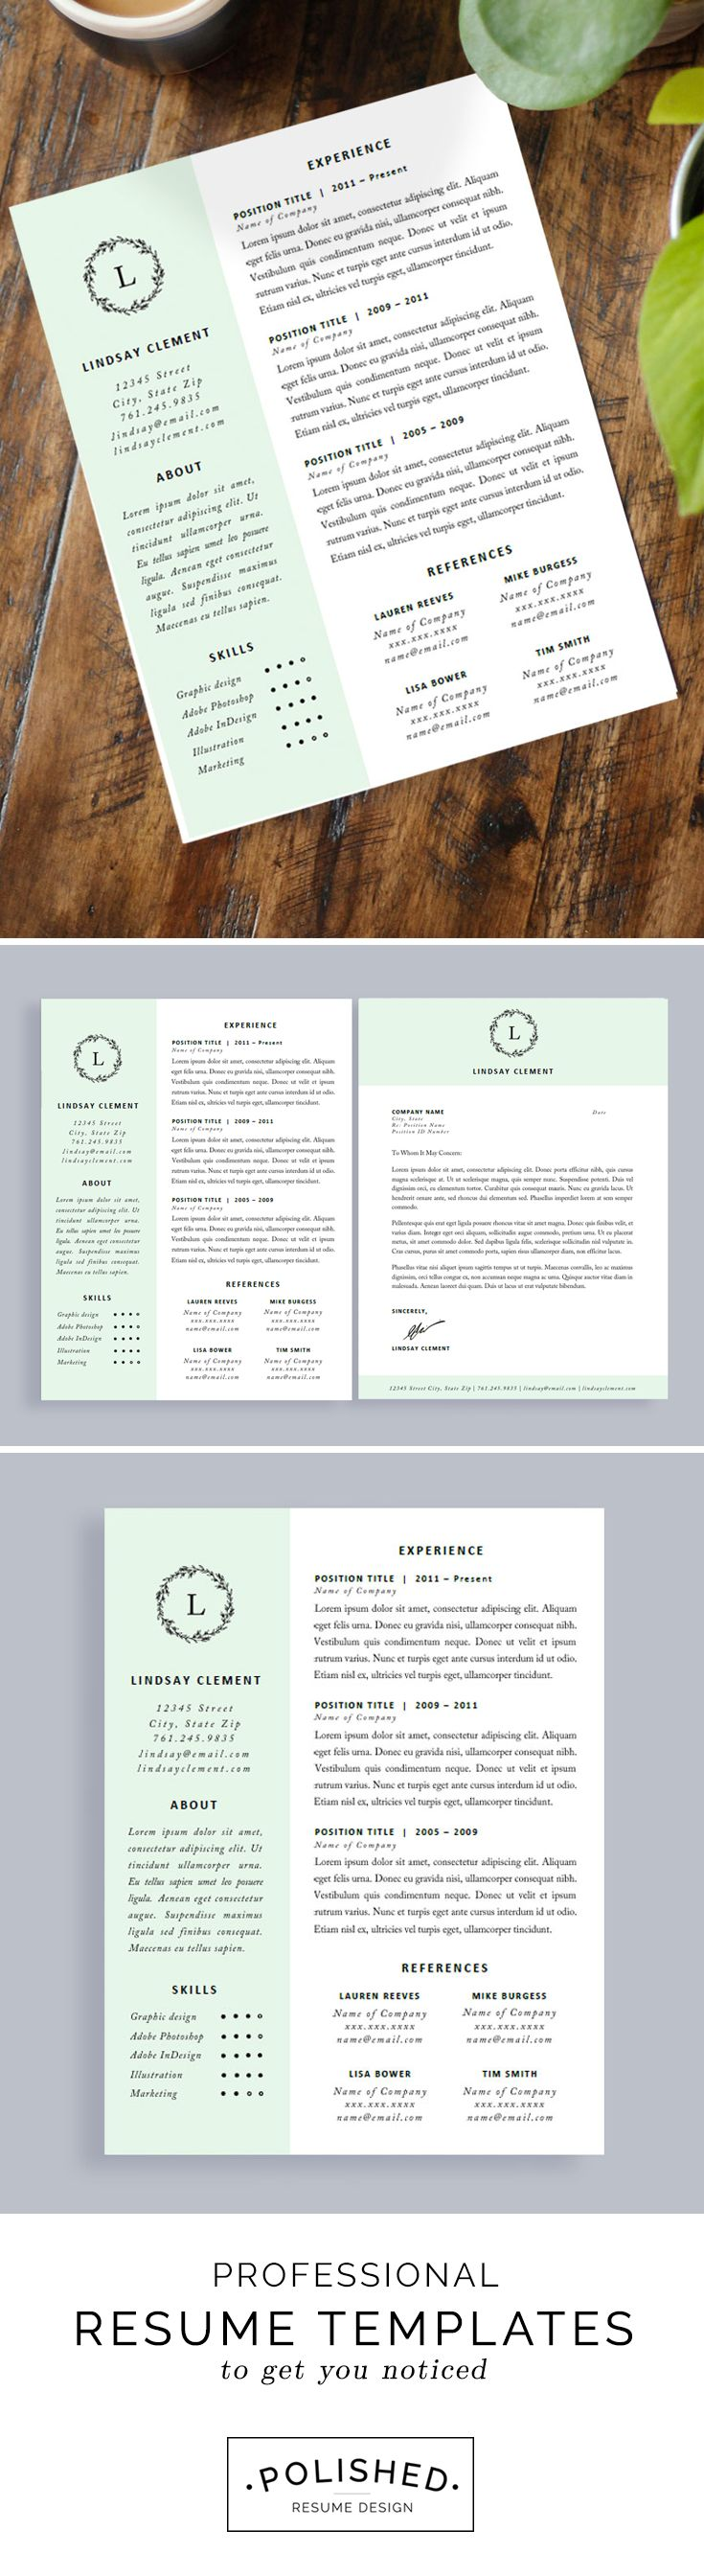 professional resume template cover letter cv professional modern creative resume template ms word for mac pc us letter best cv - How To Write A Cover Letter And Resume